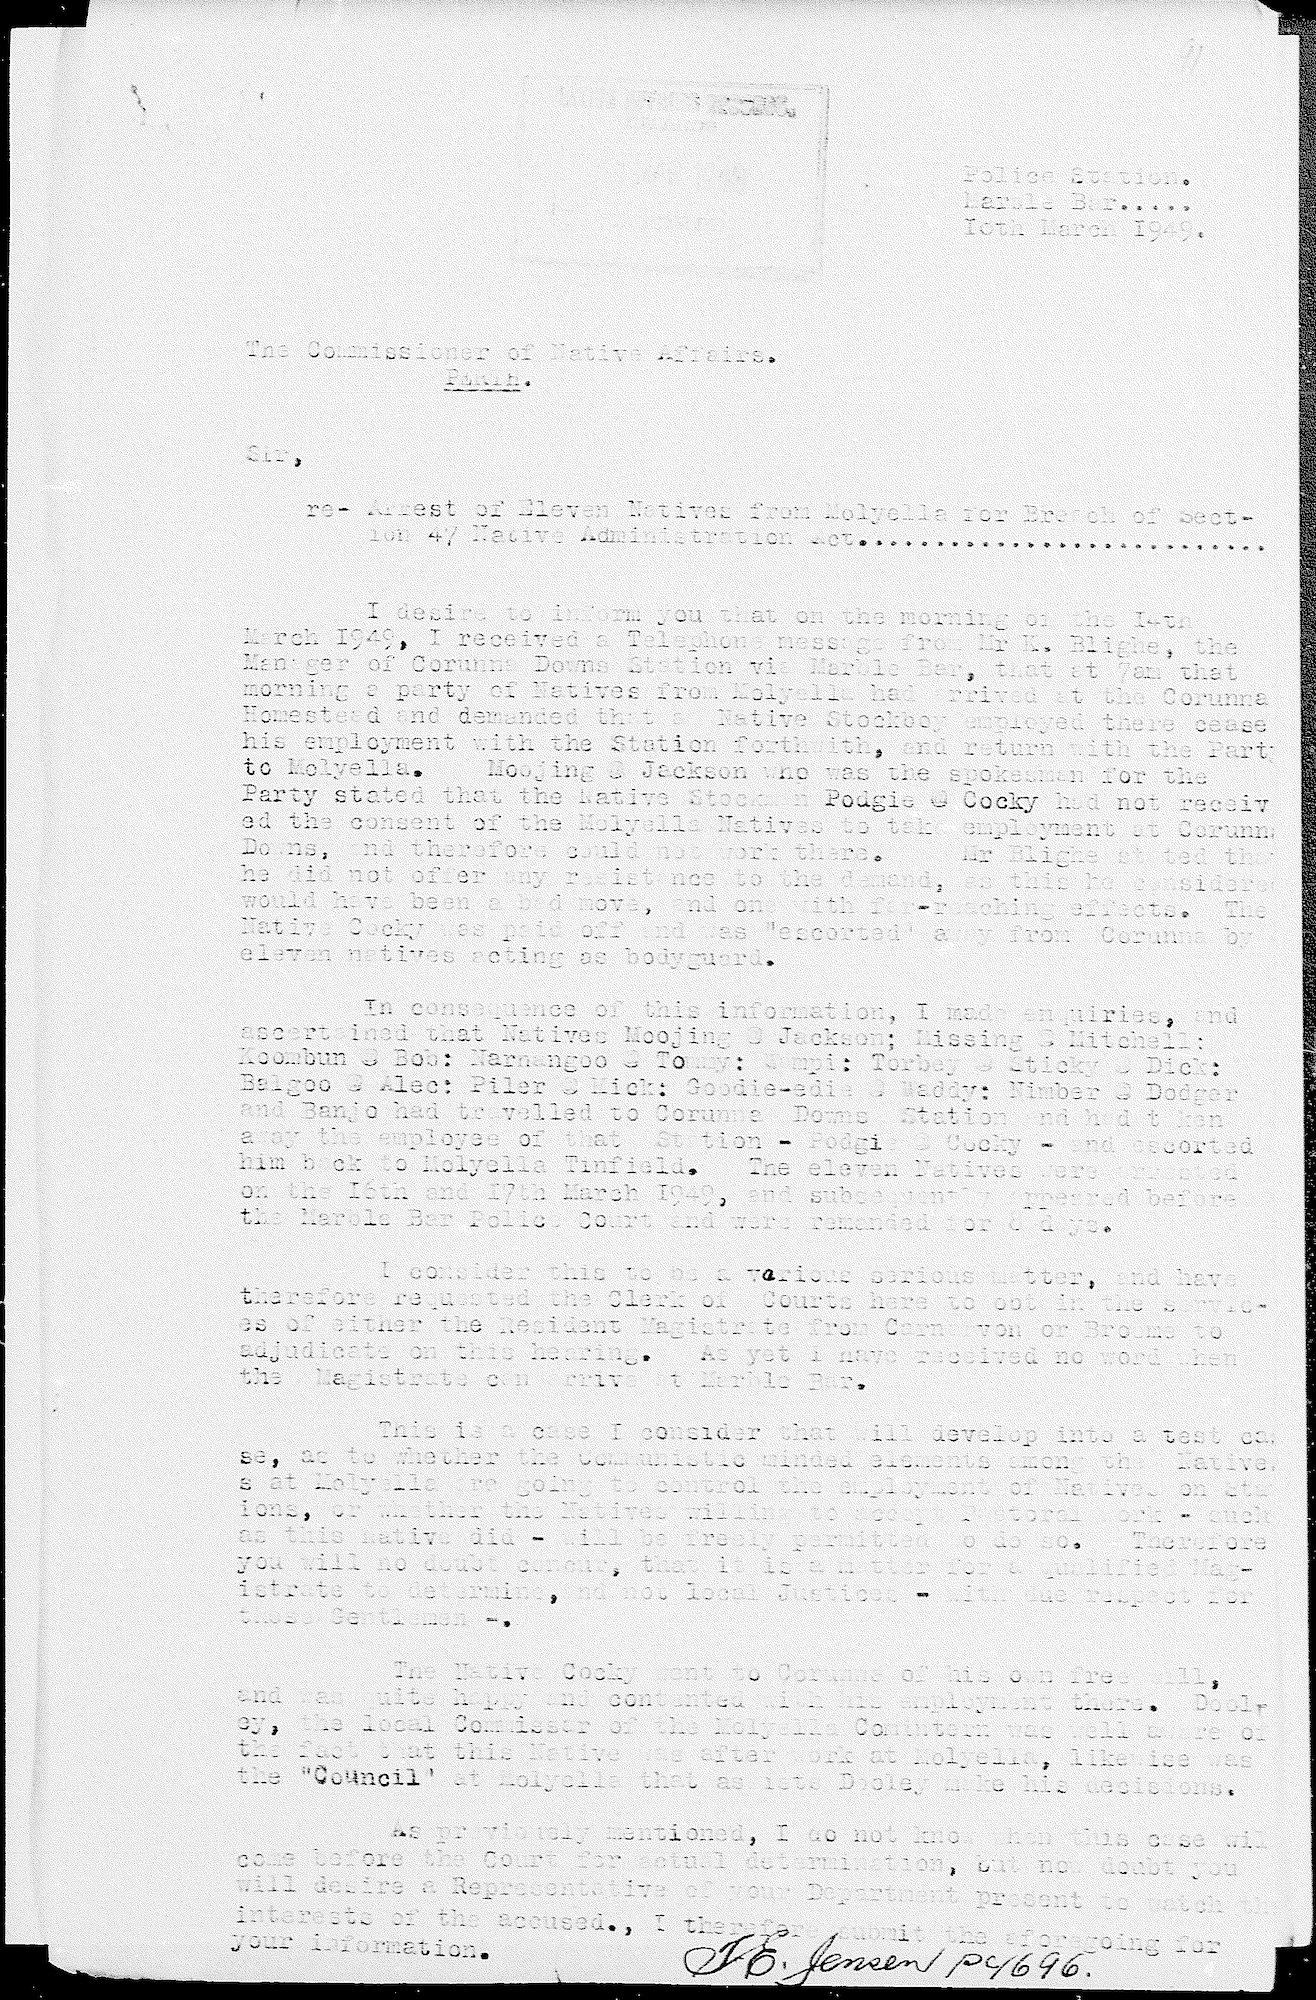 Constable Tom Jensen to Commissioner Stan Middleton, 10 March 1949